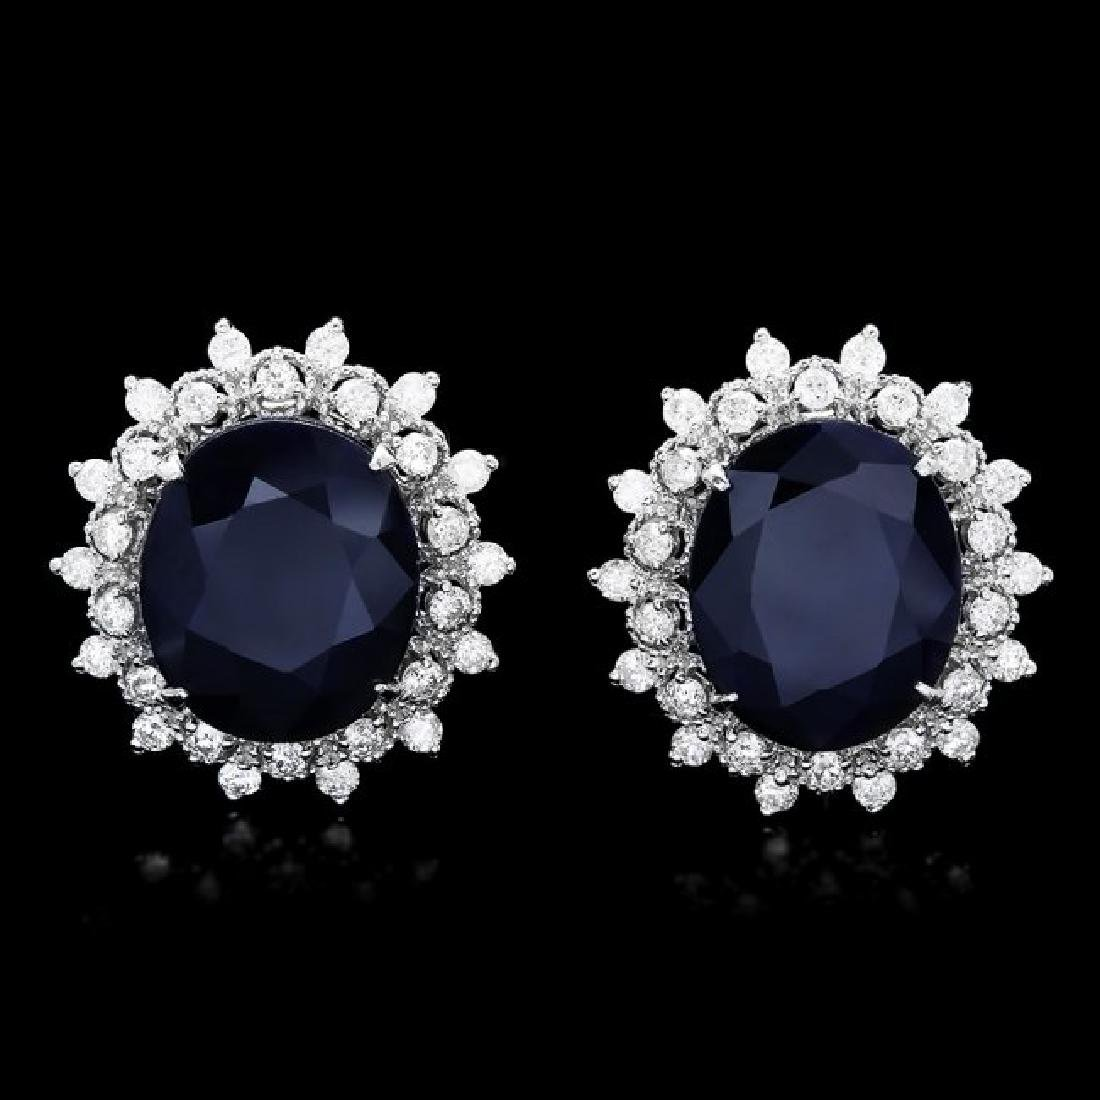 14k Gold 15ct Sapphire 1.40ct Diamond Earrings